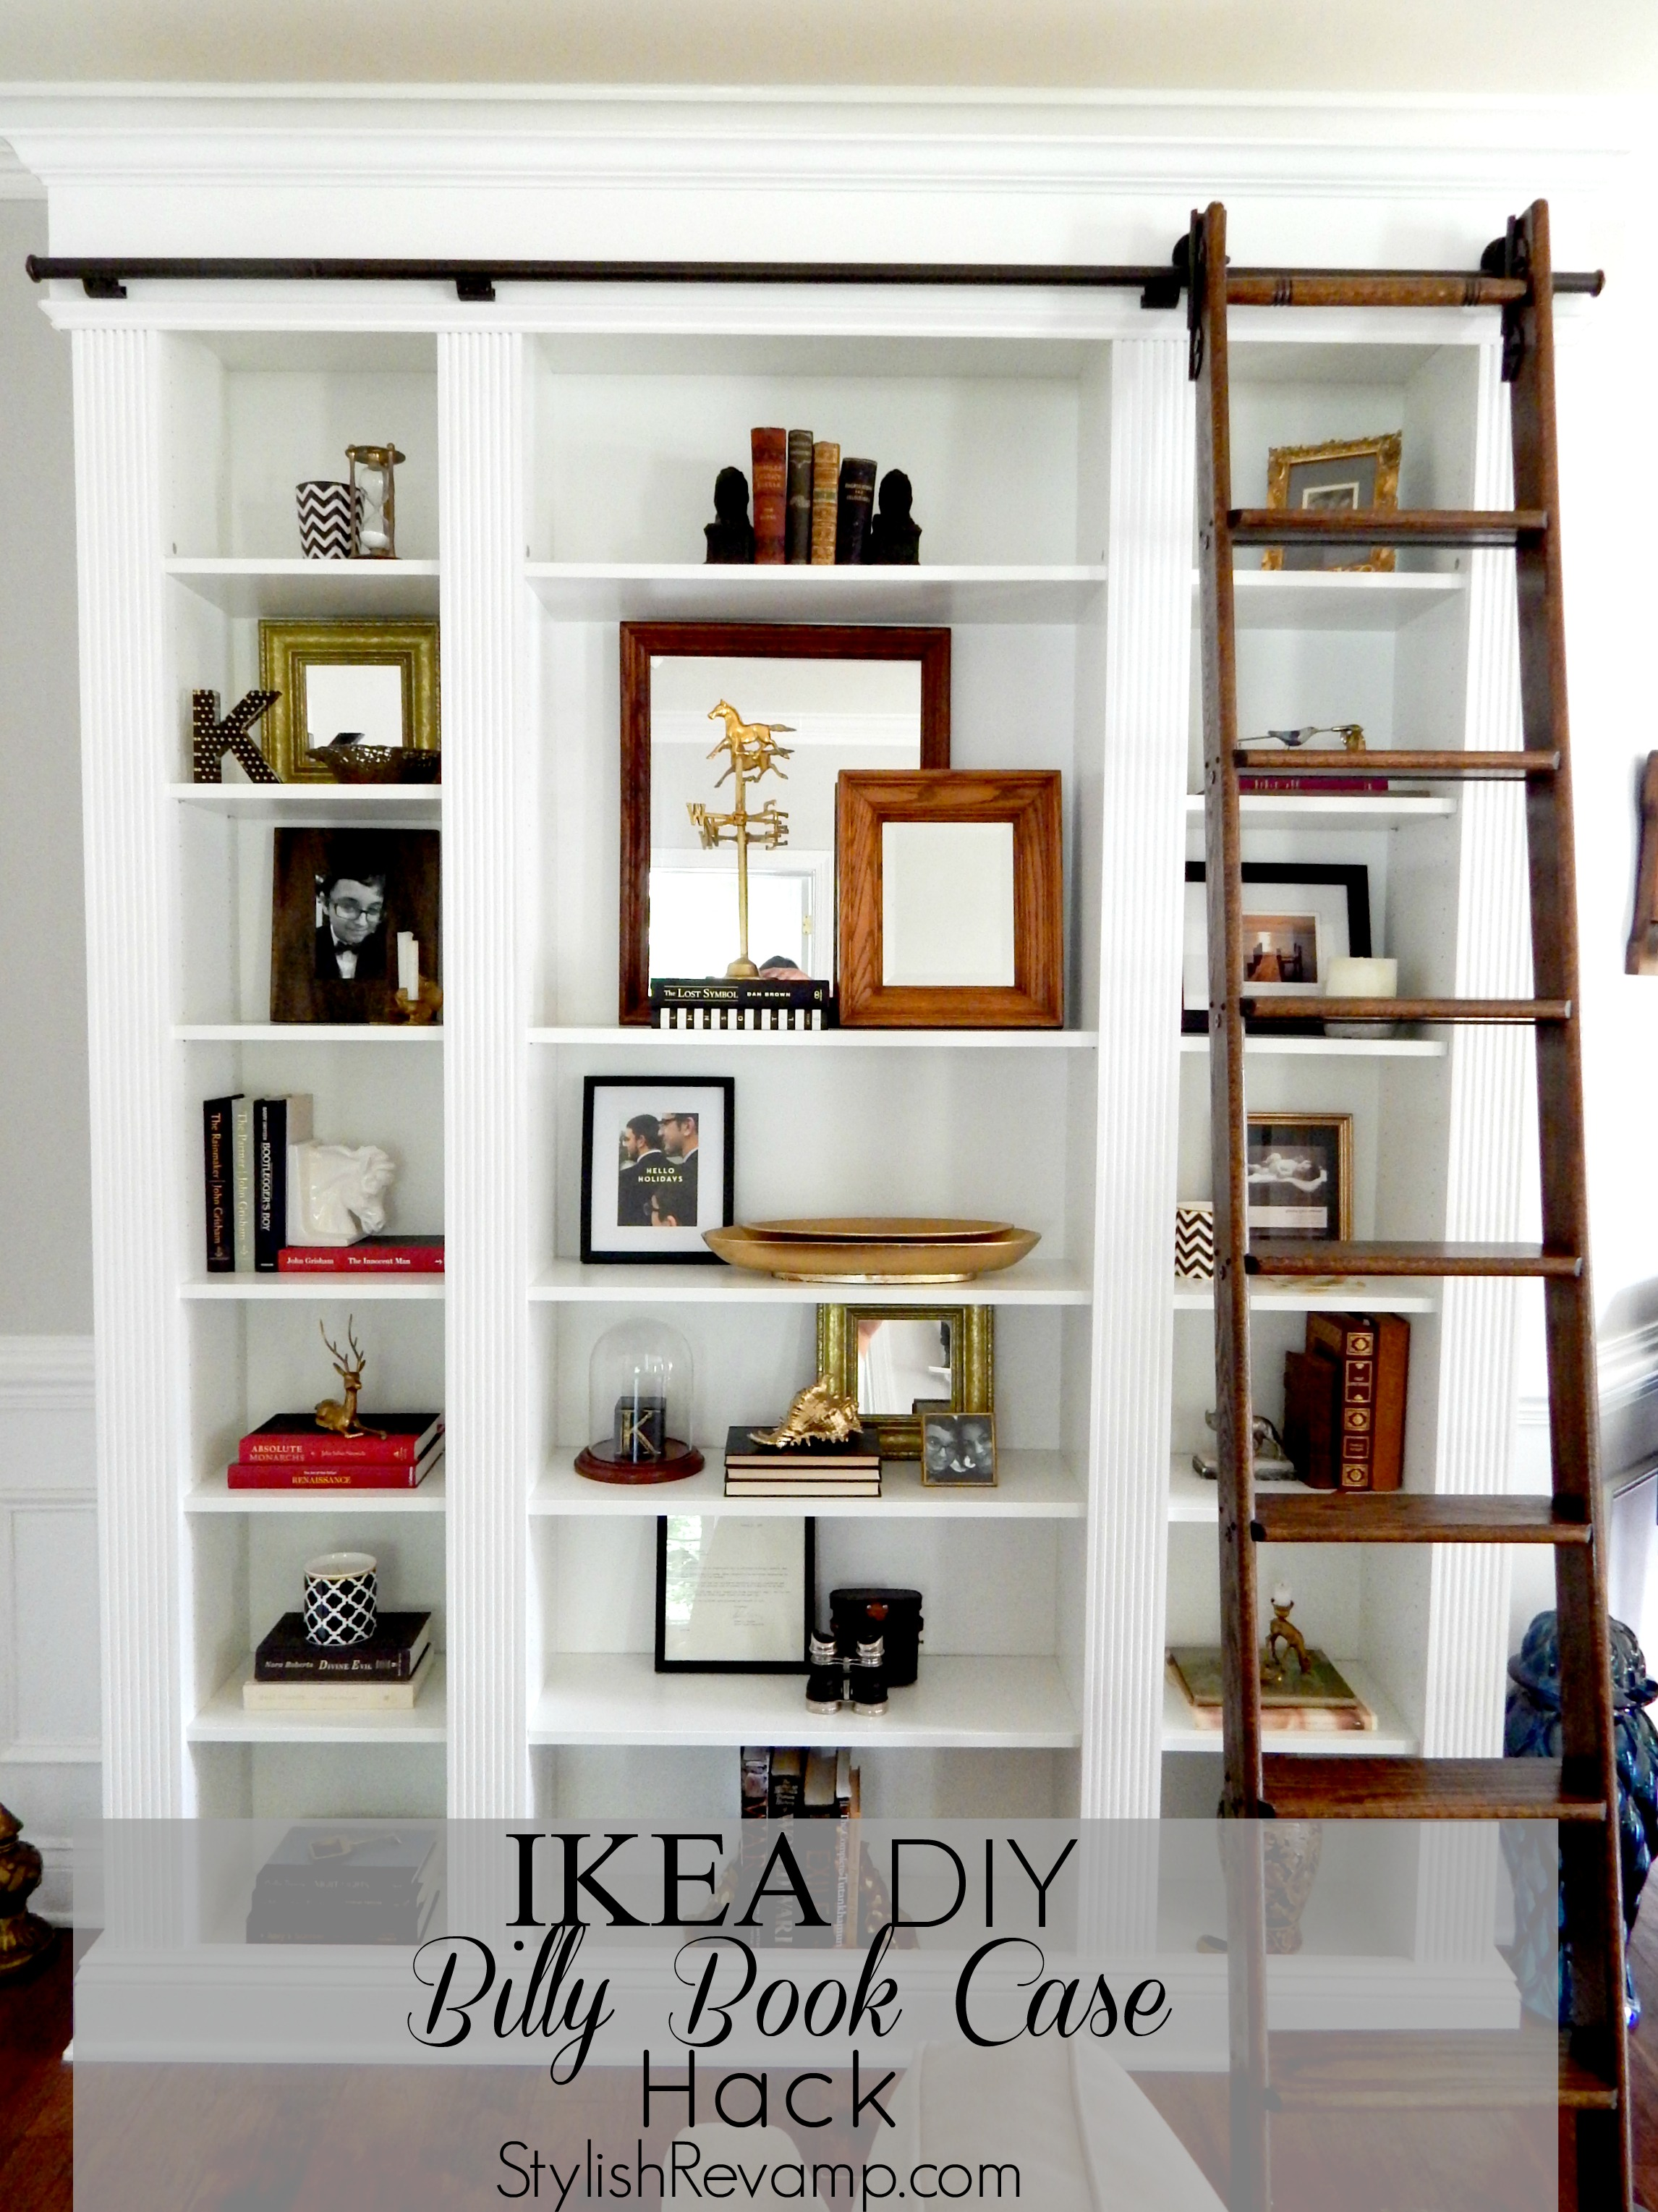 Ikea Billy Hack Designing With The Ikea Book Case Stylish Revamp